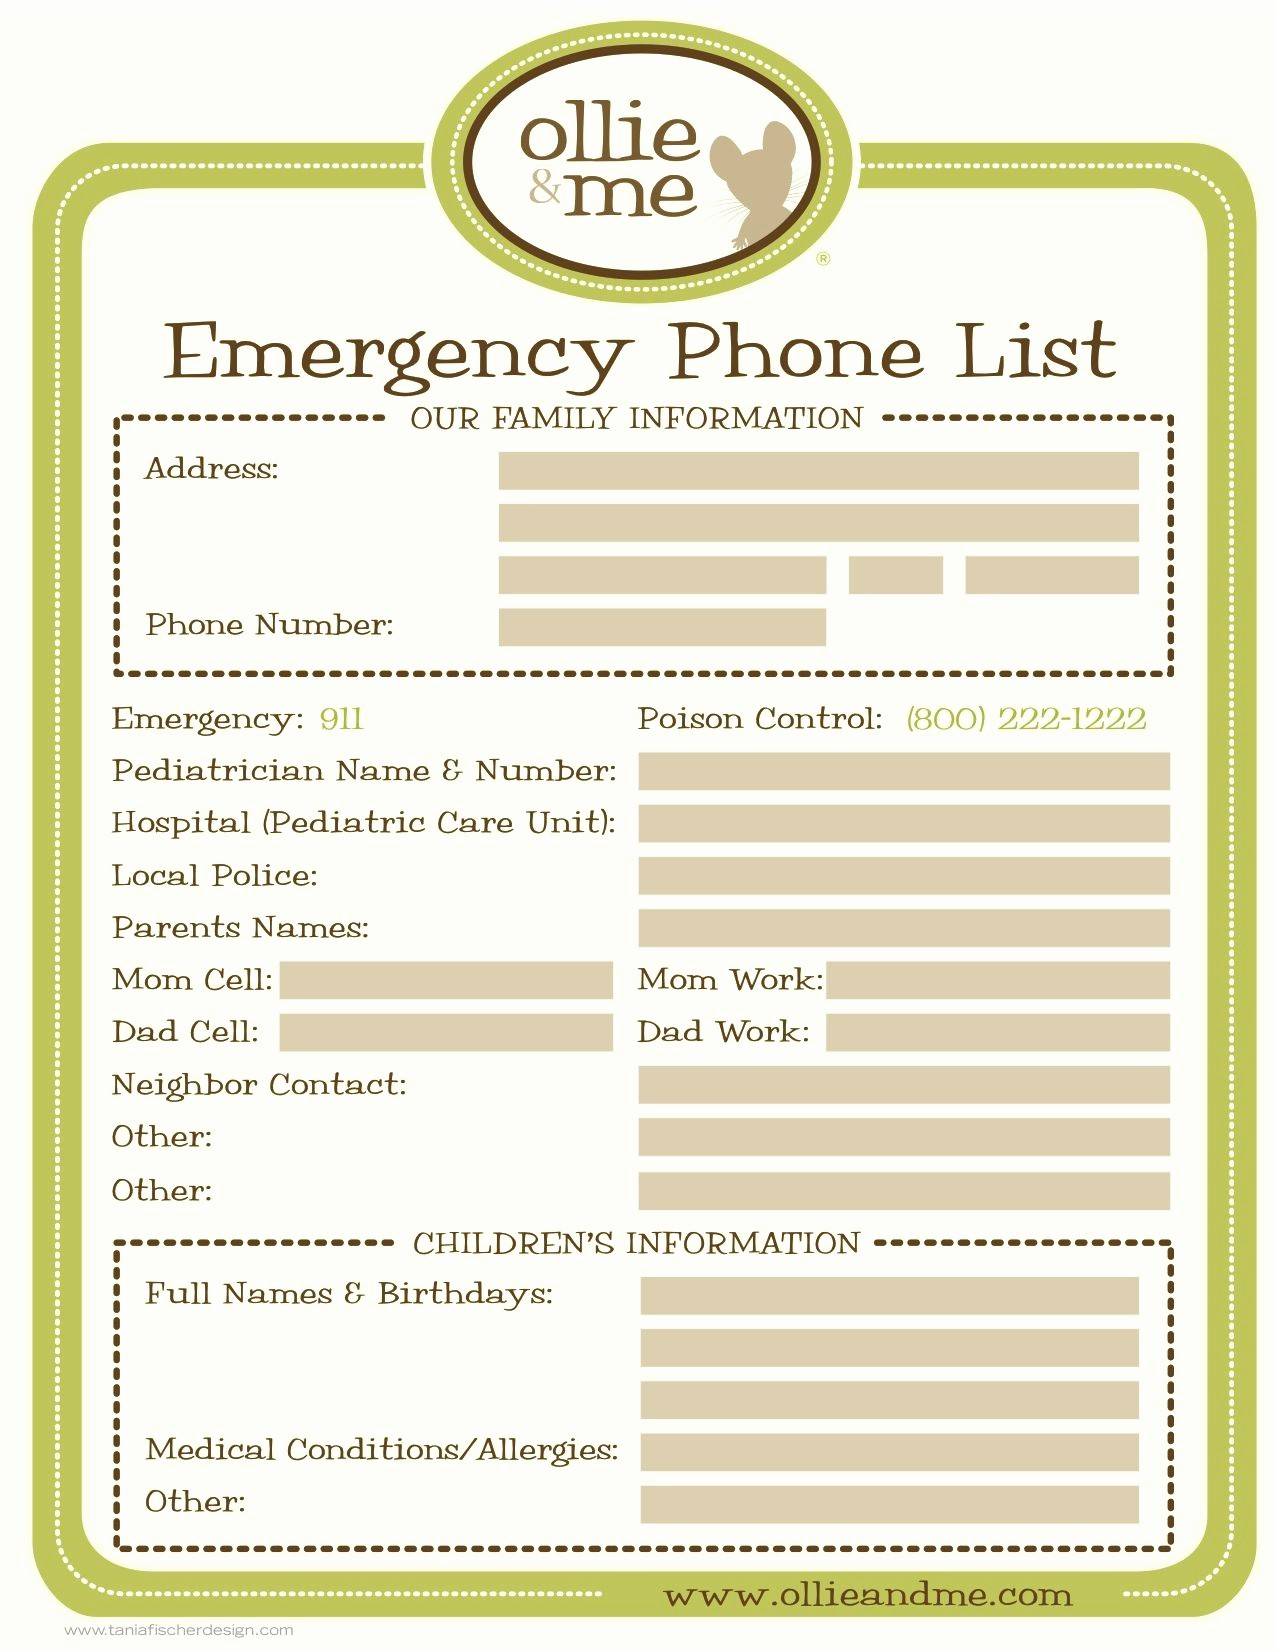 Emergency Contact List for Kids Luxury Emergency Phone List for Your Babysitter